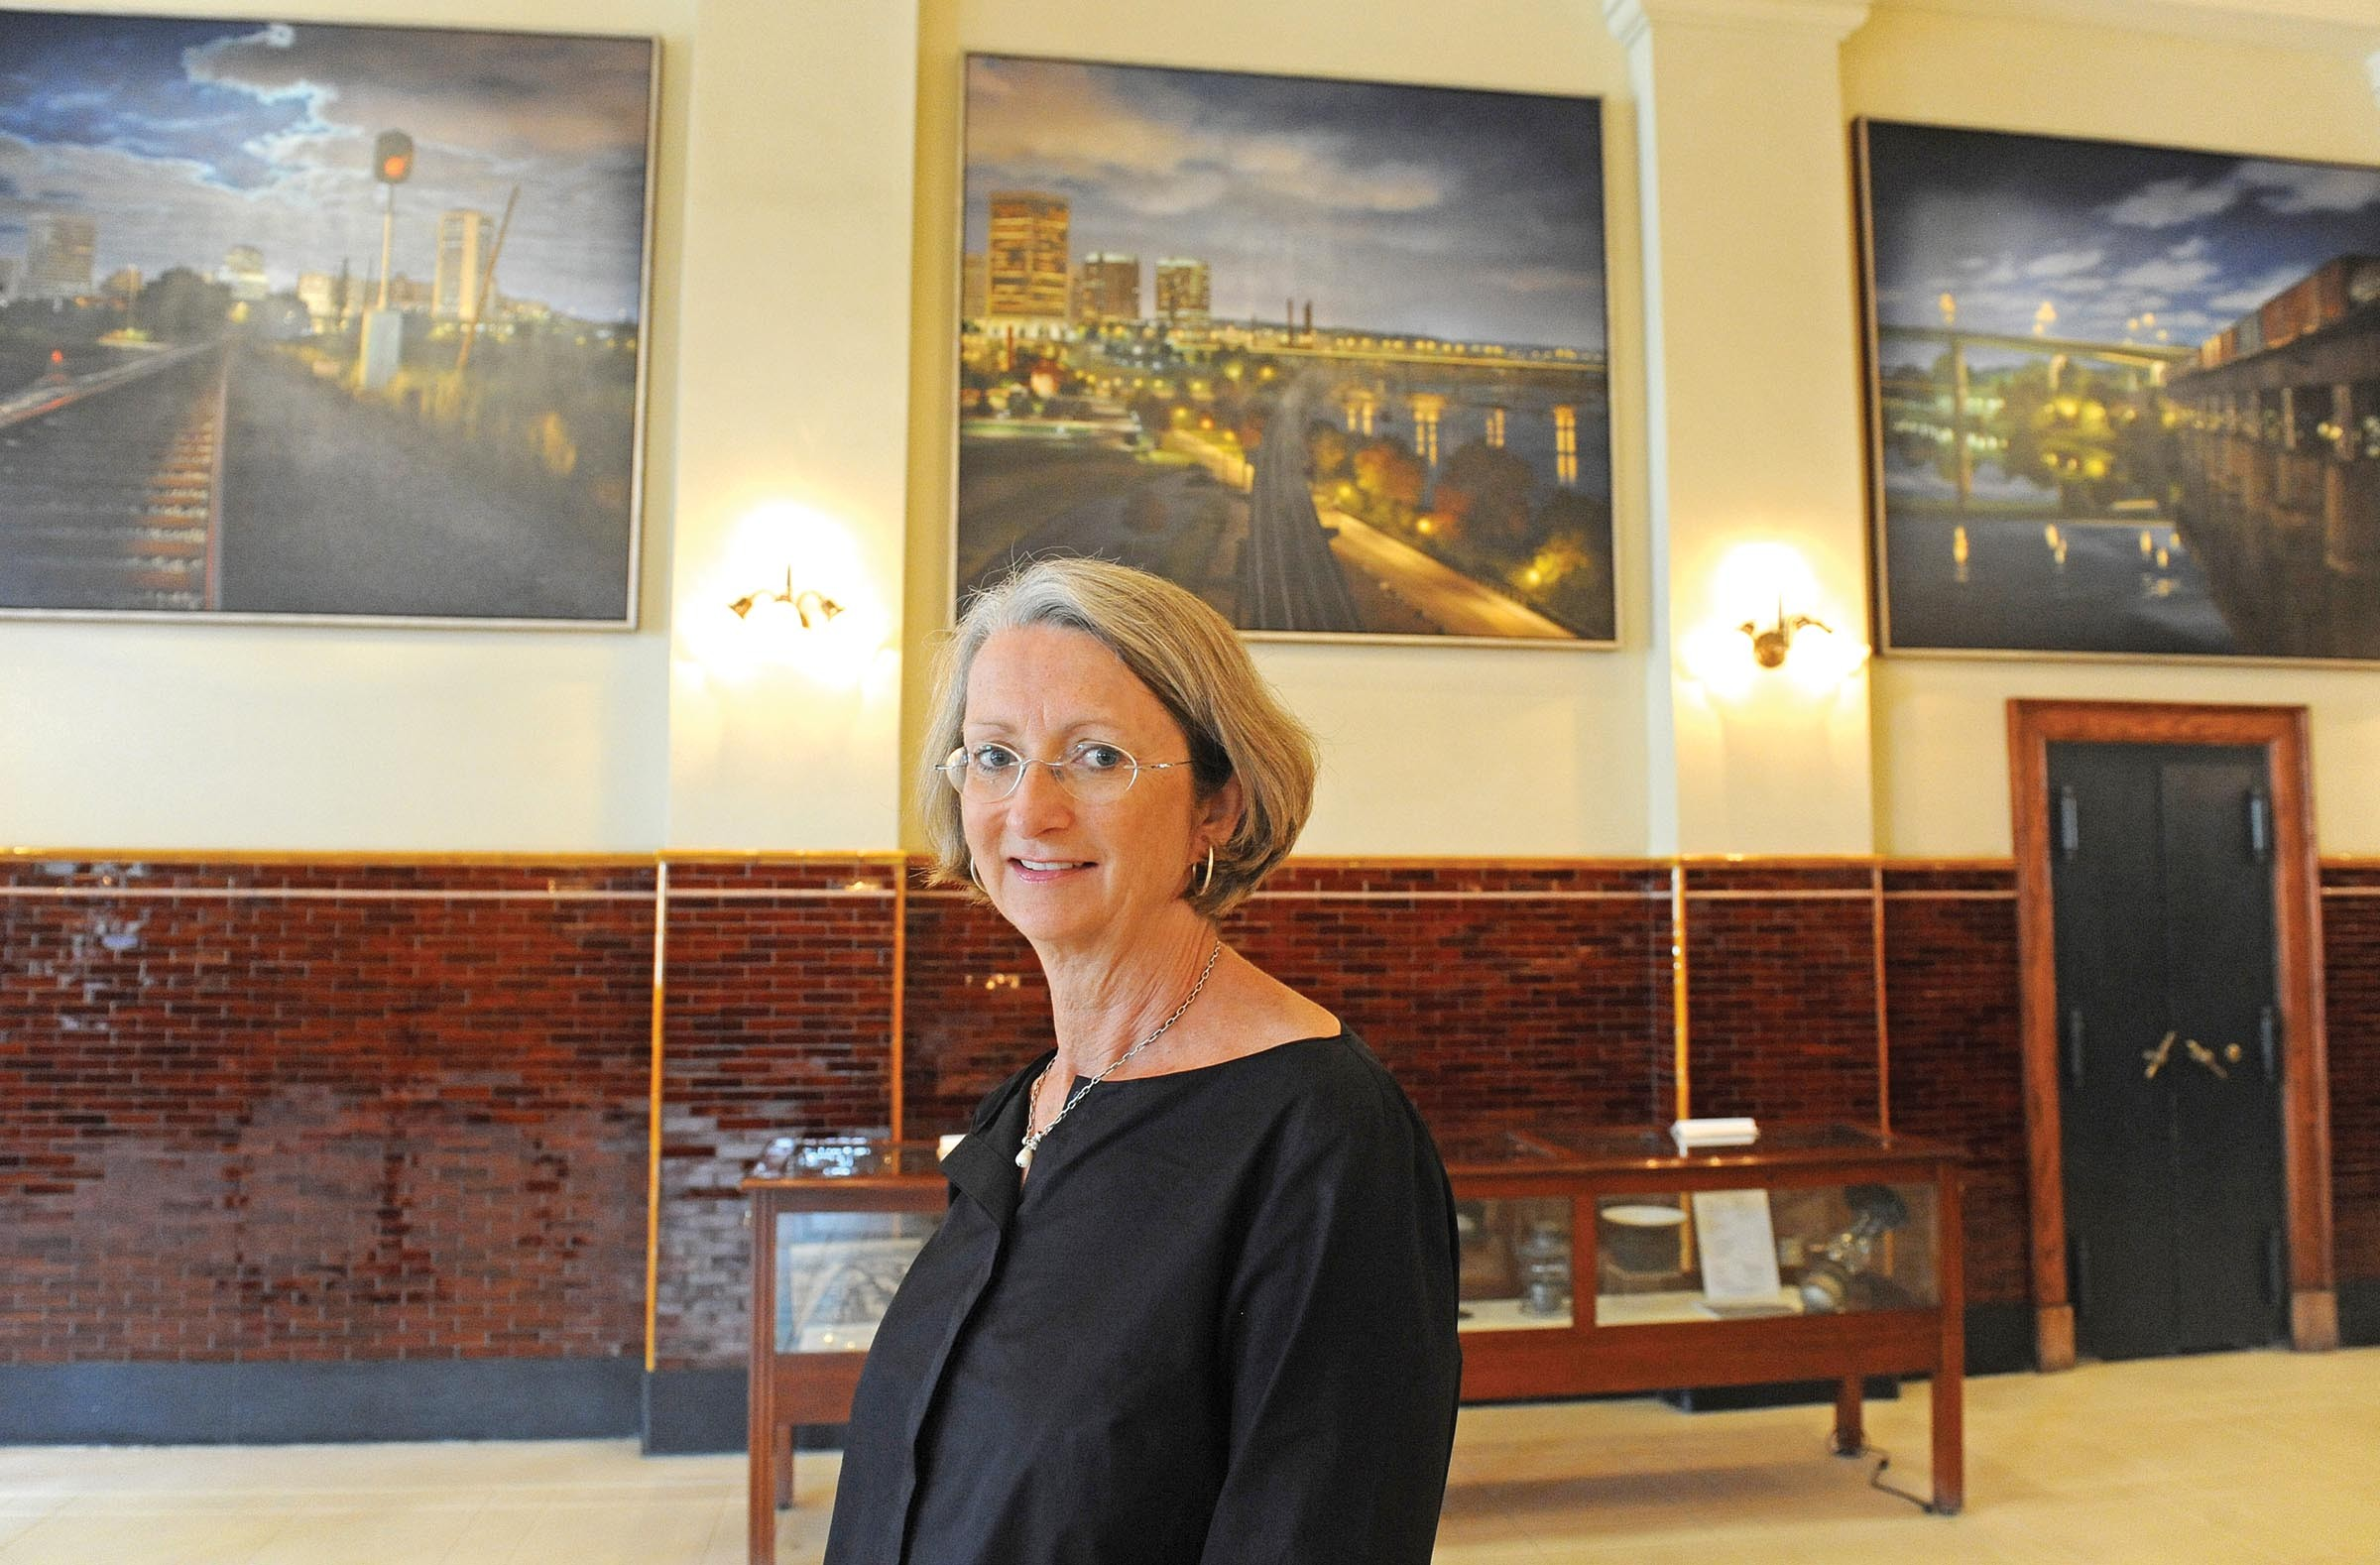 """The Public Art Commission welcomes debate, member Sarah Shields Driggs says, in front of a board-commissioned work, """"Main Street Triptych: Richmond Crossings"""" by Stephen Fox, at Main Street Station. """"Even if people disagree, it gets them talking,"""" she says. - SCOTT ELMQUIST"""